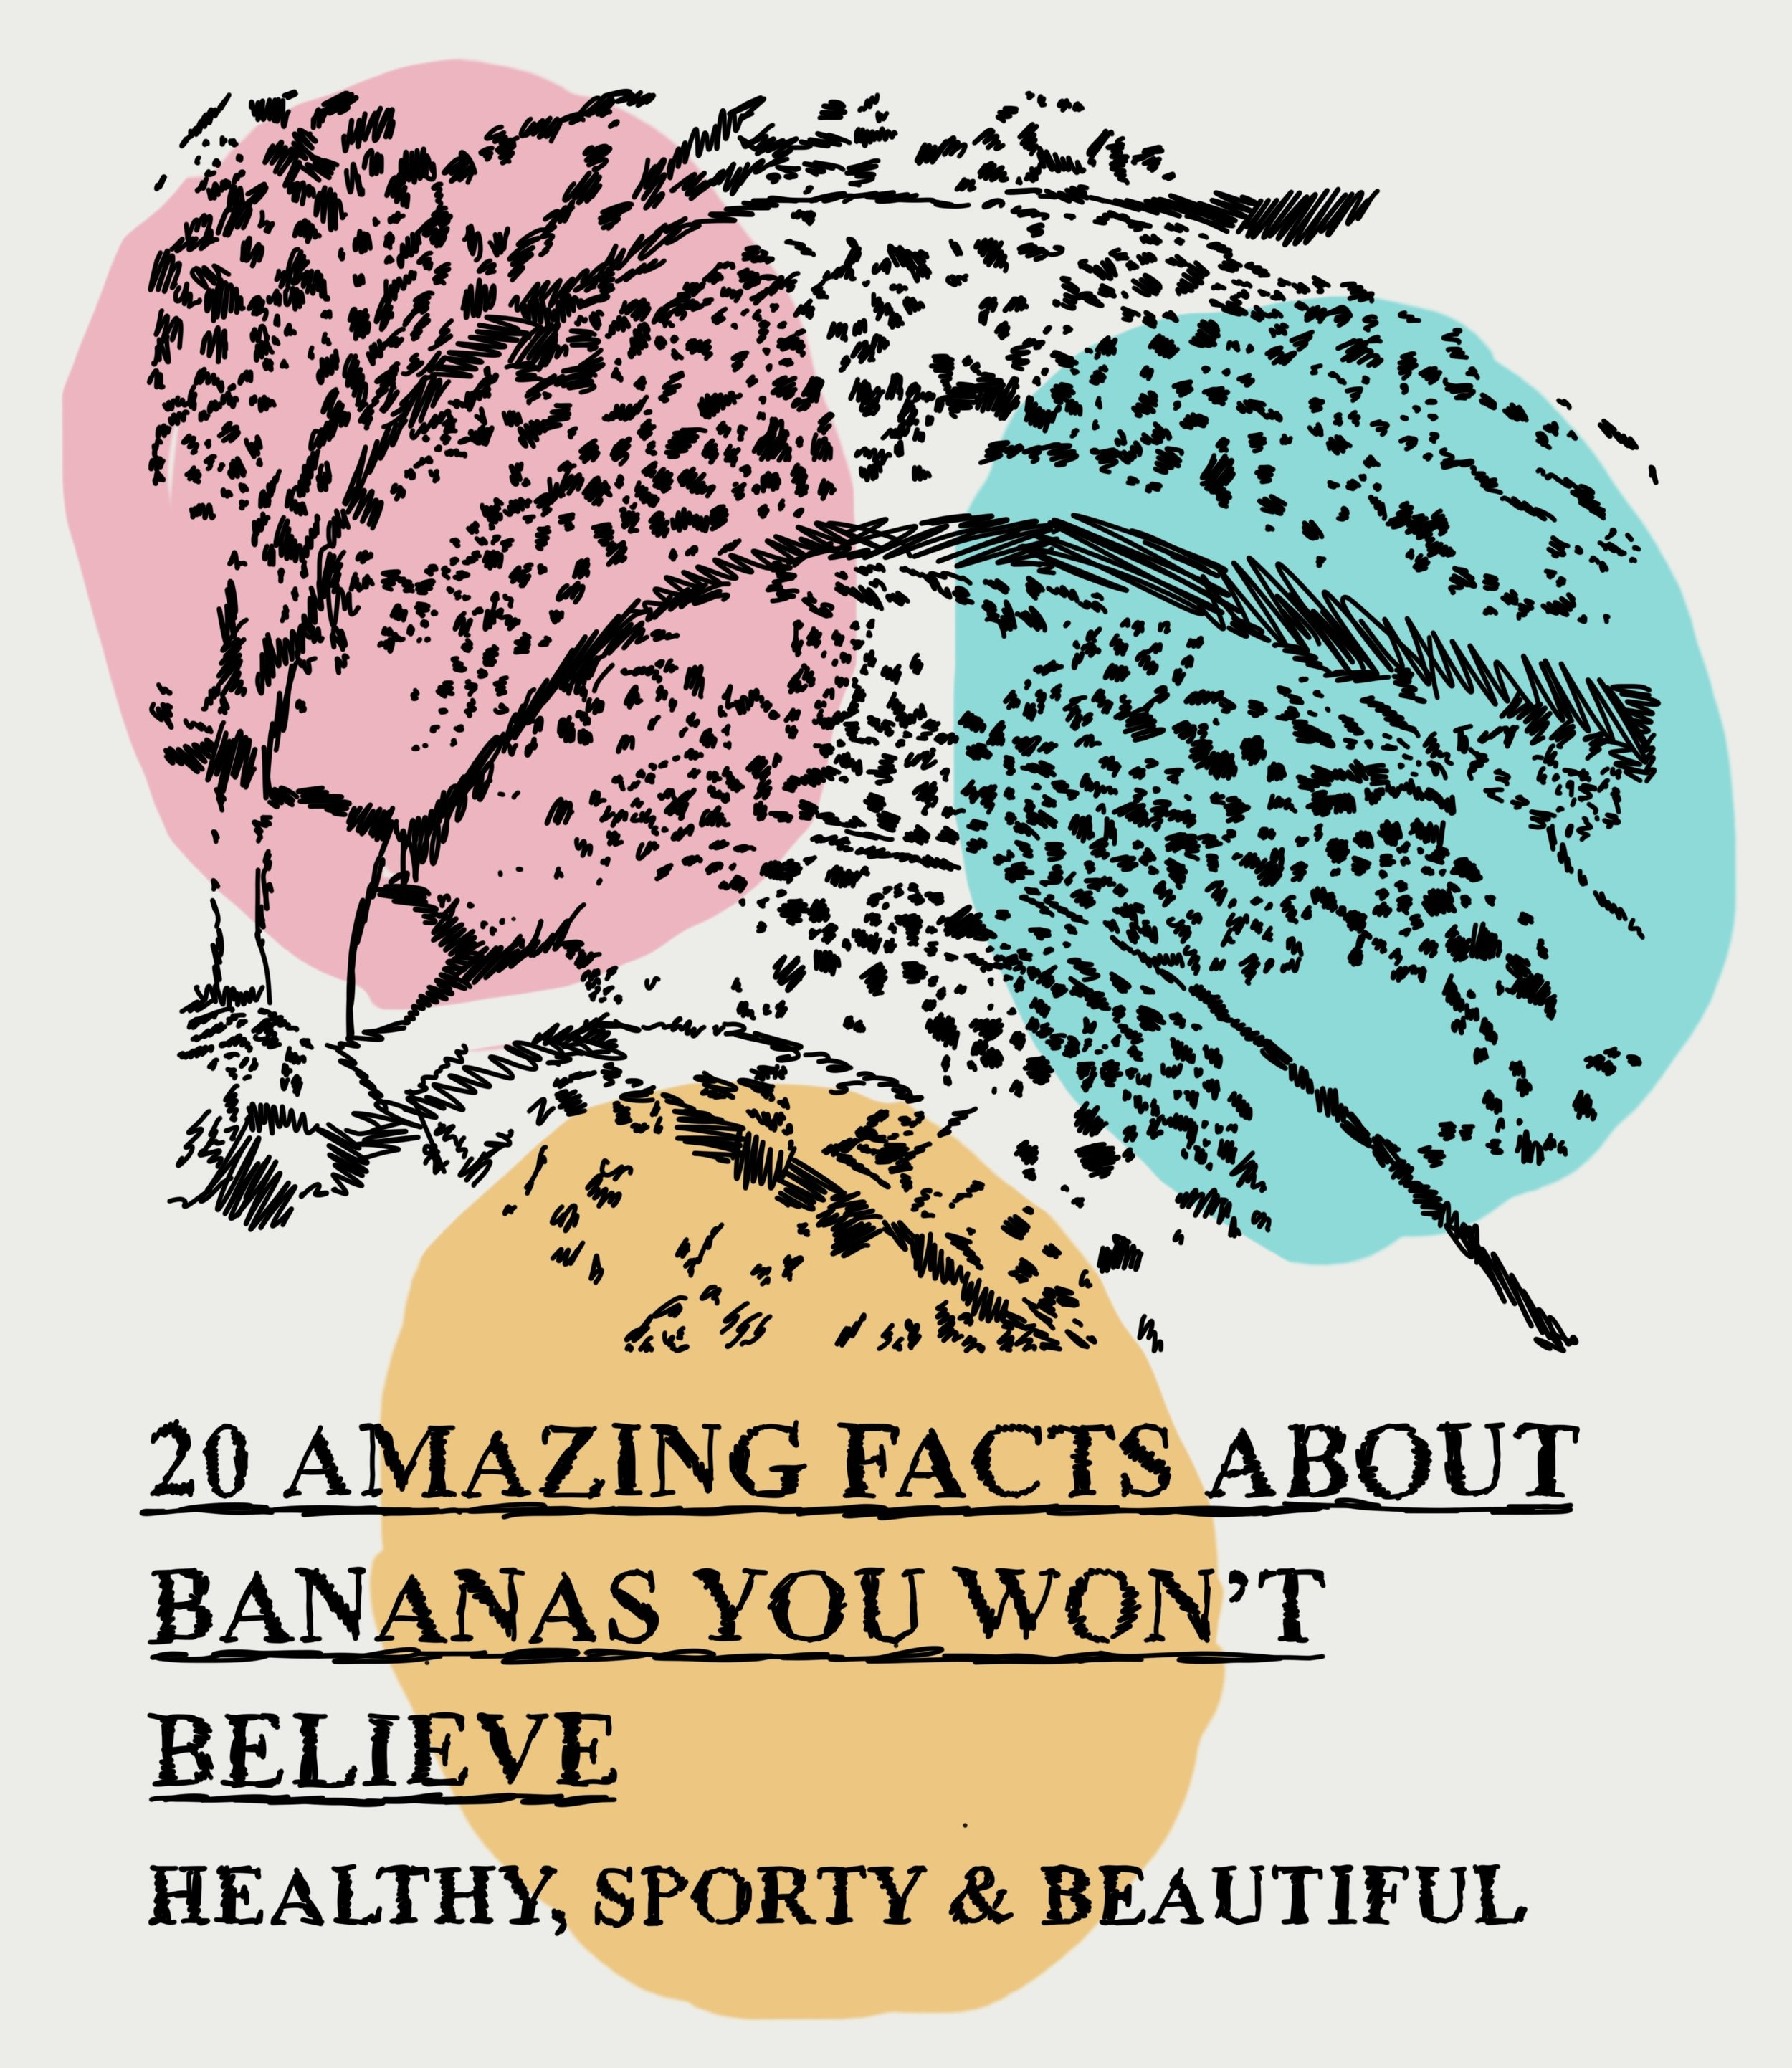 """""""20 Amazing Facts about Bananas"""", iPhone 6S, digital image, 2017."""